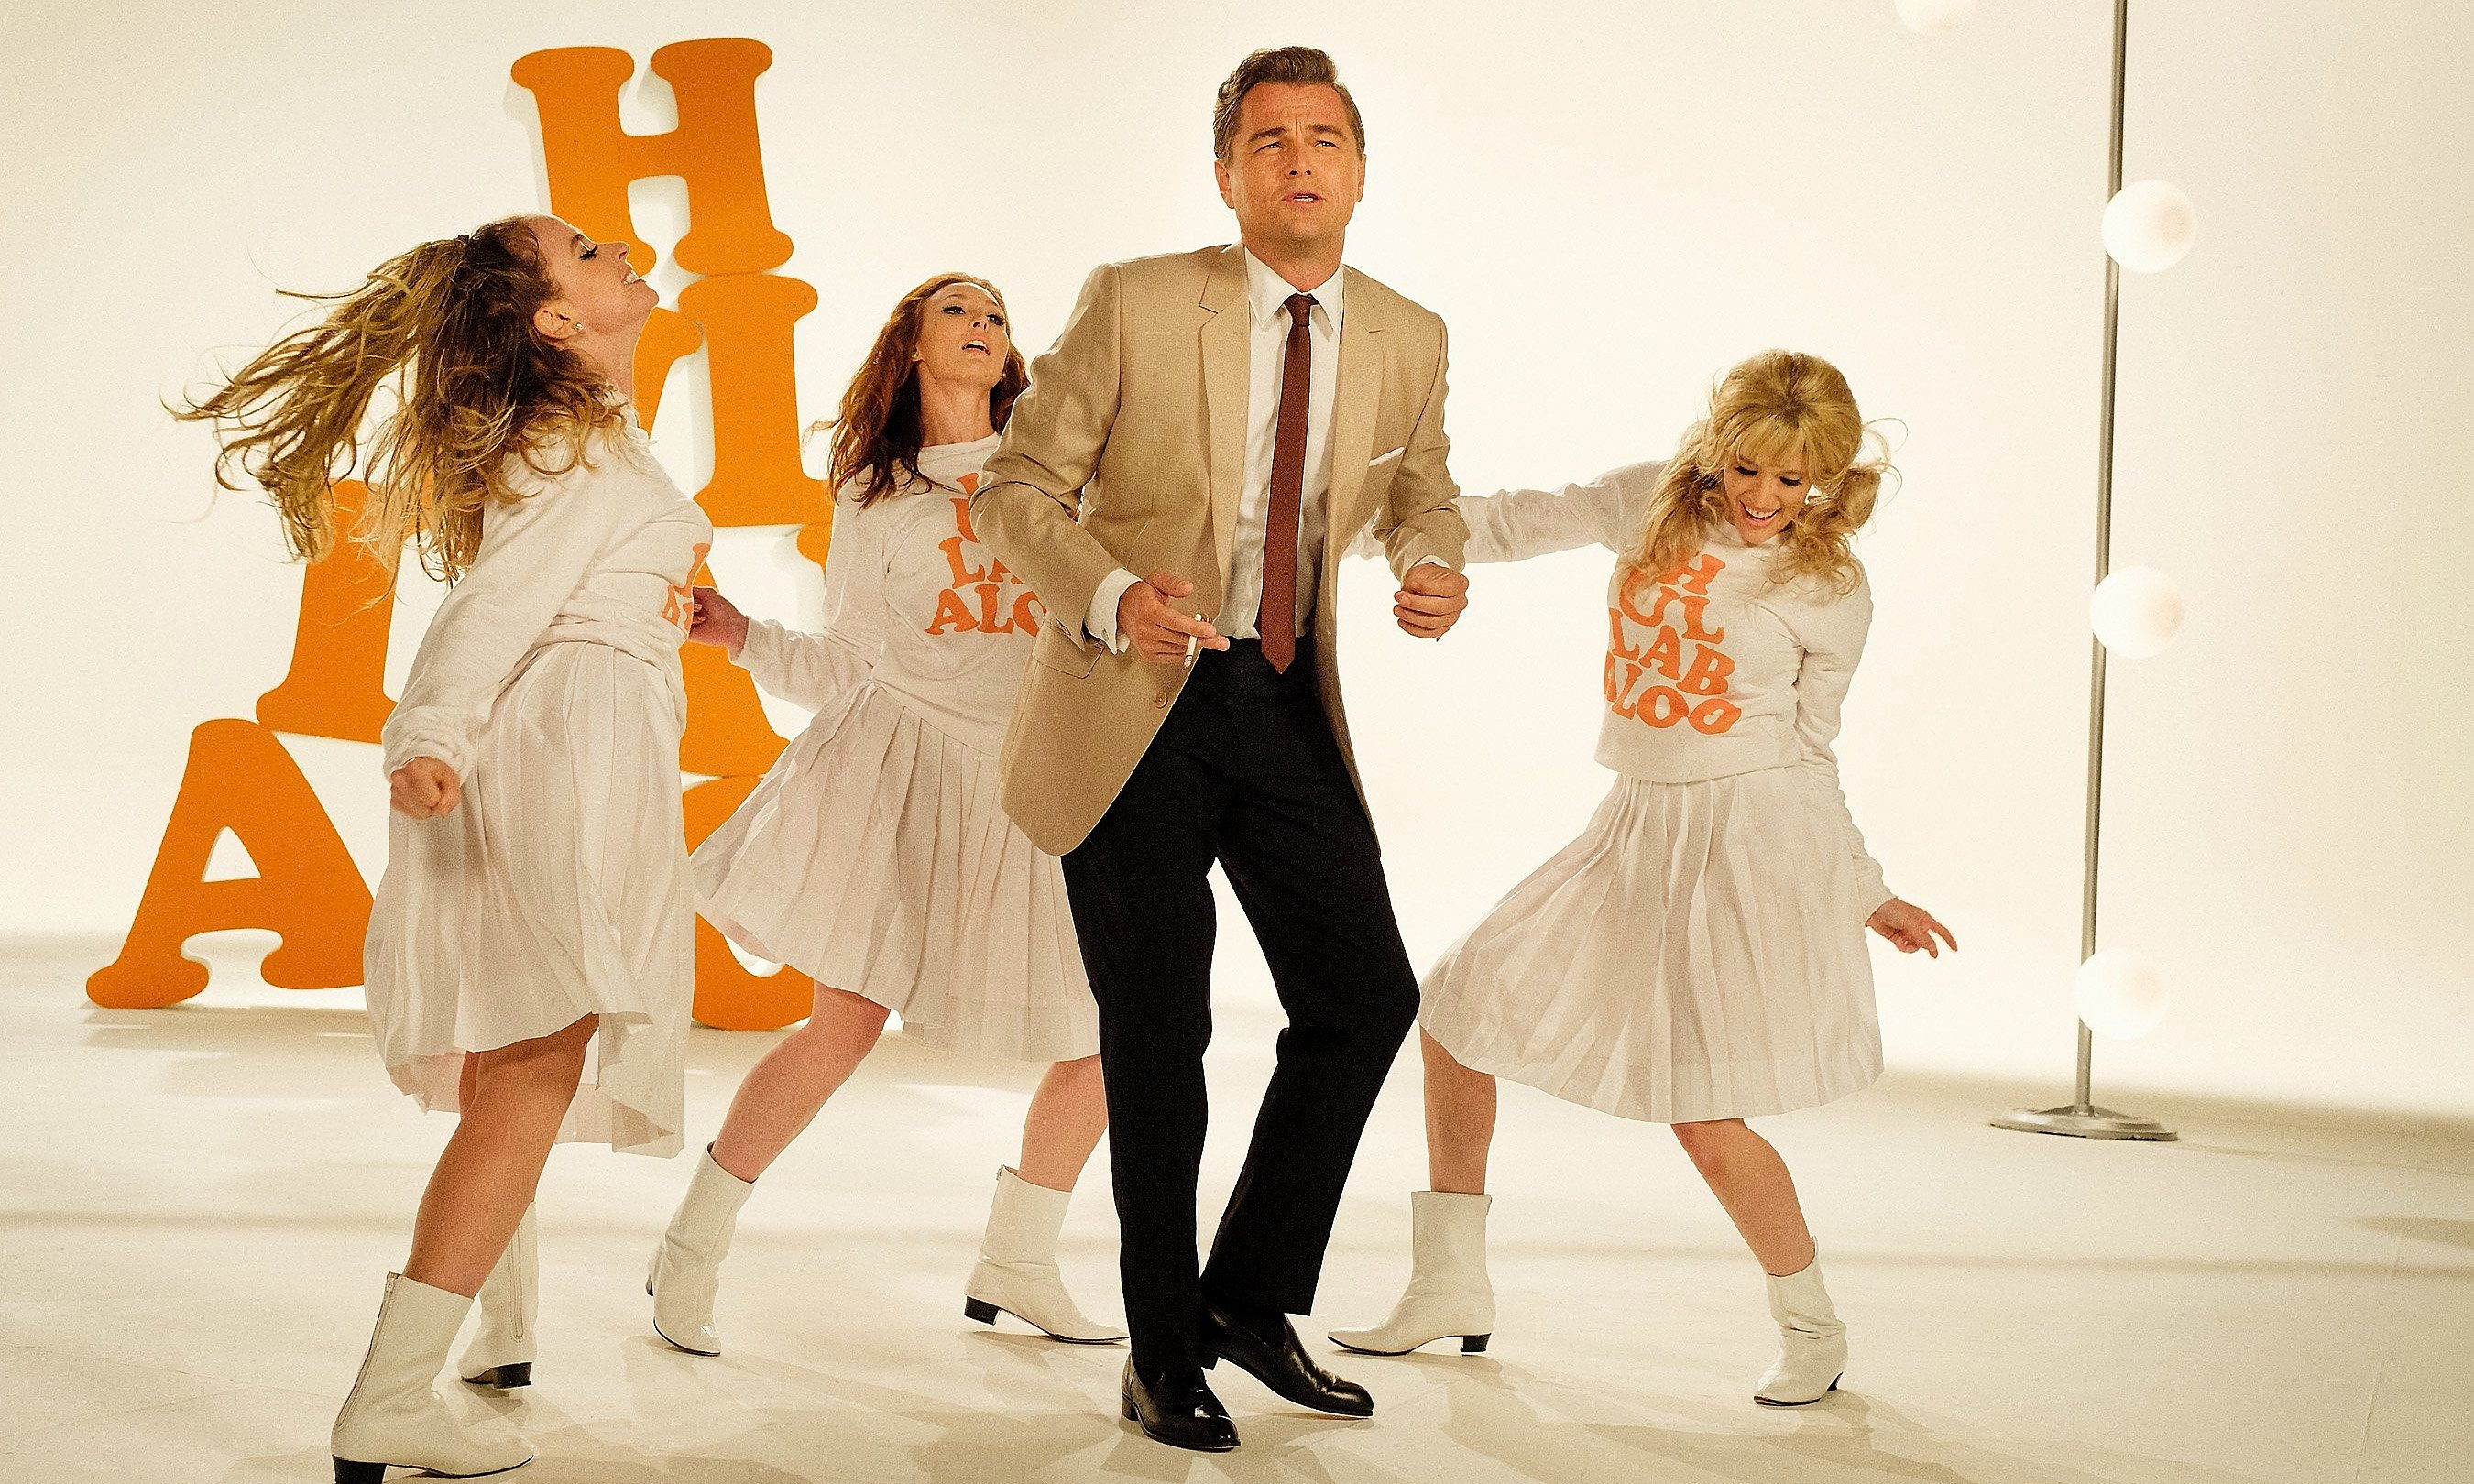 actor leonardio Dicaprio dancing in the movie Once Upon a Time in Hollywood